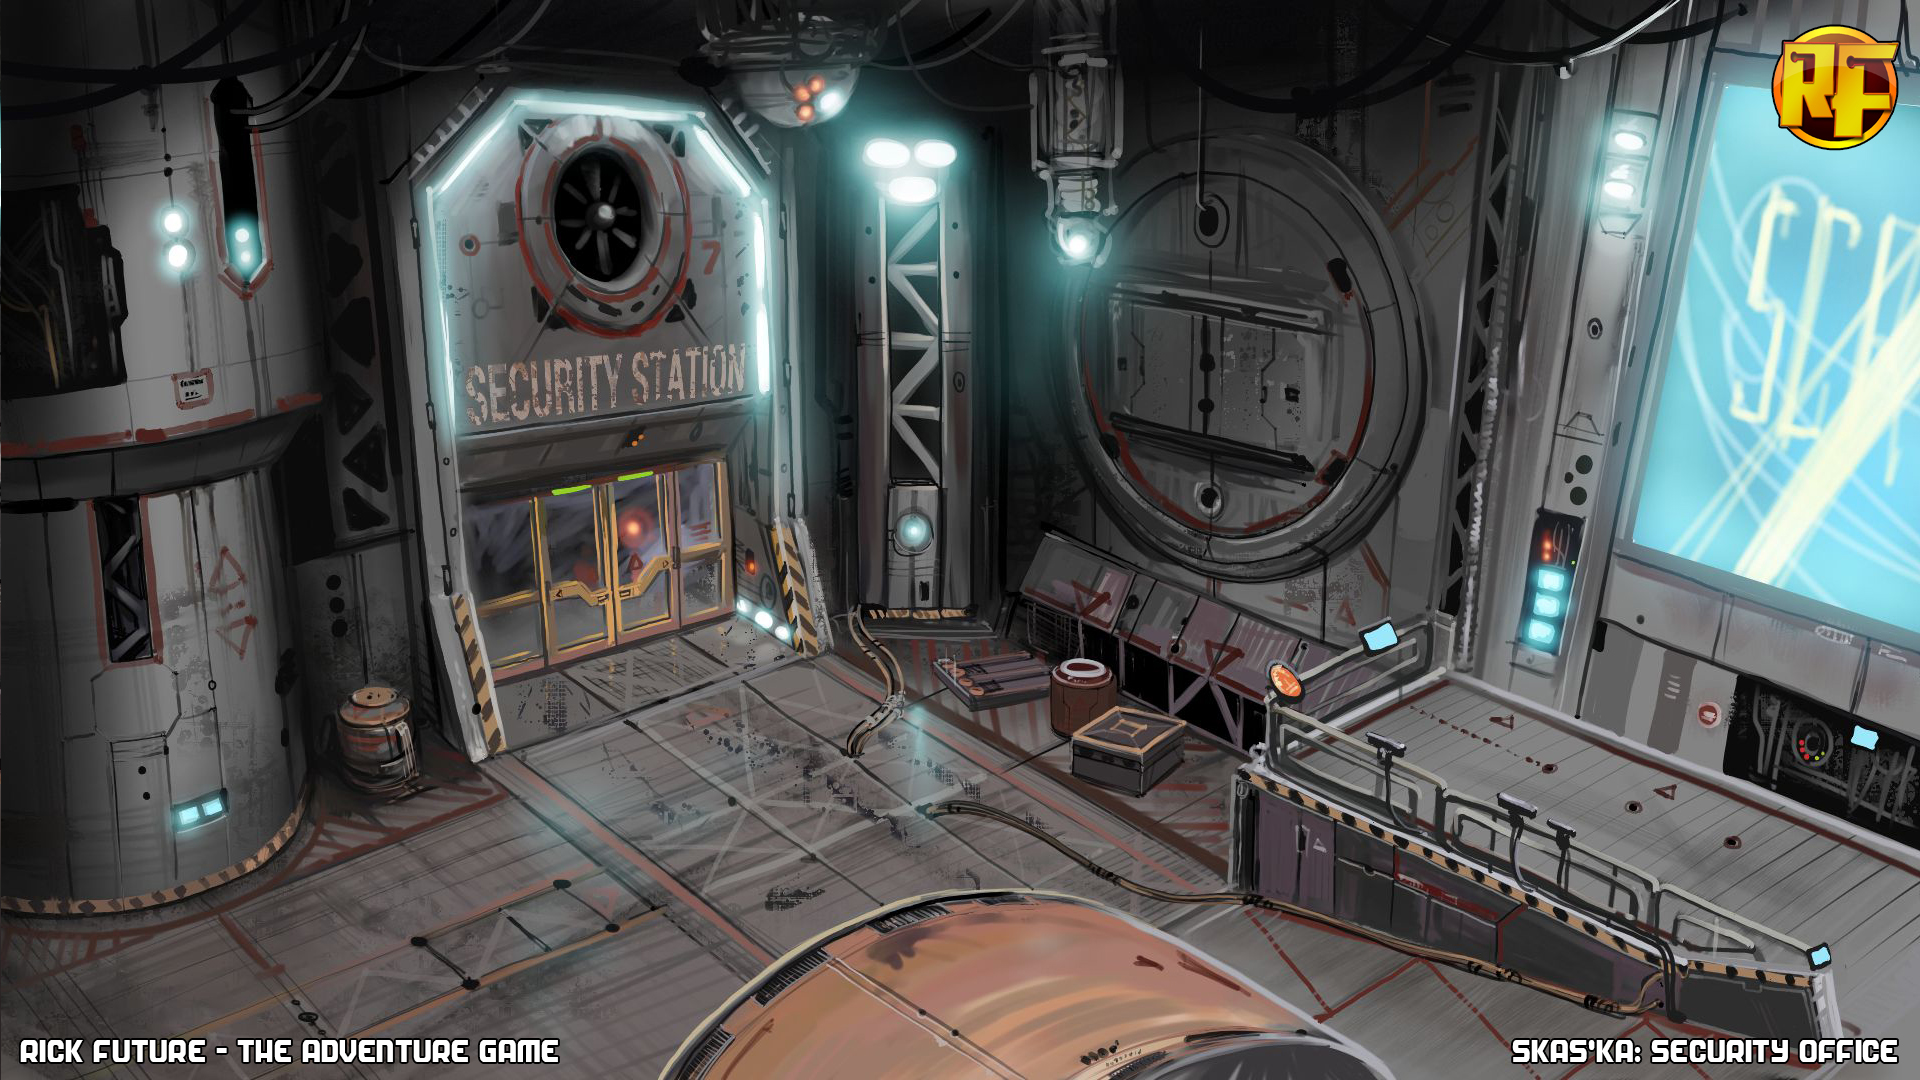 prison sci fi space station - photo #32